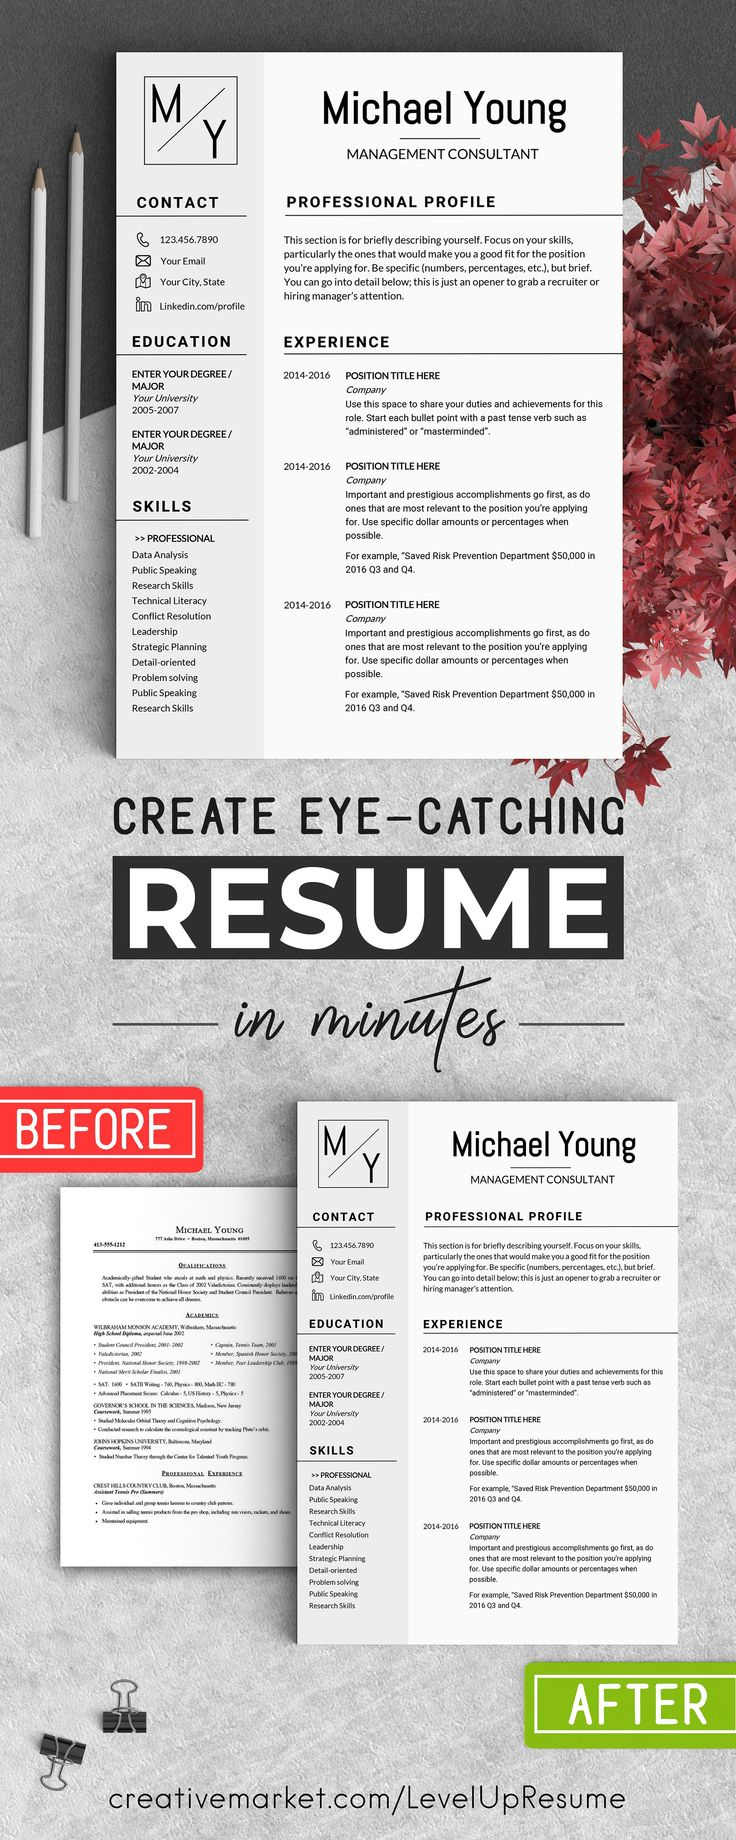 Professional Resume CV Template by LevelUpResume on @creativemarket #ad #resumes #career #interviews